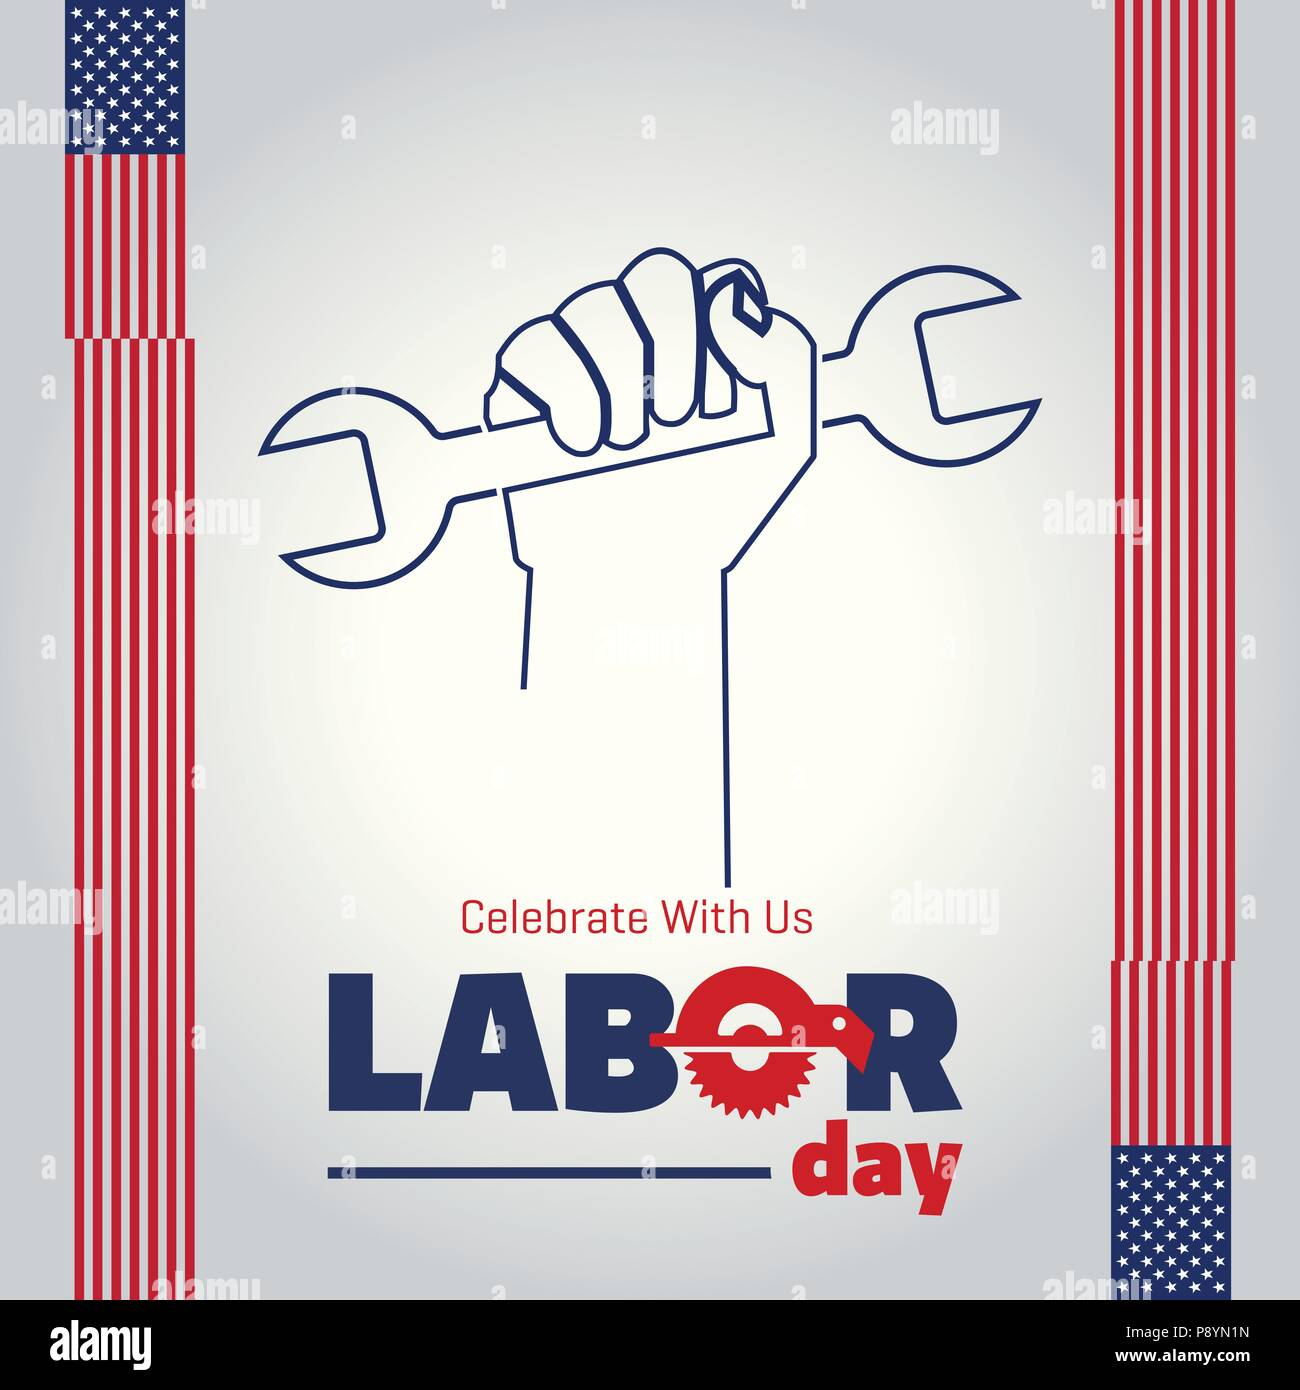 Vector Illustration Of A Happy Labor Day A National Holiday For